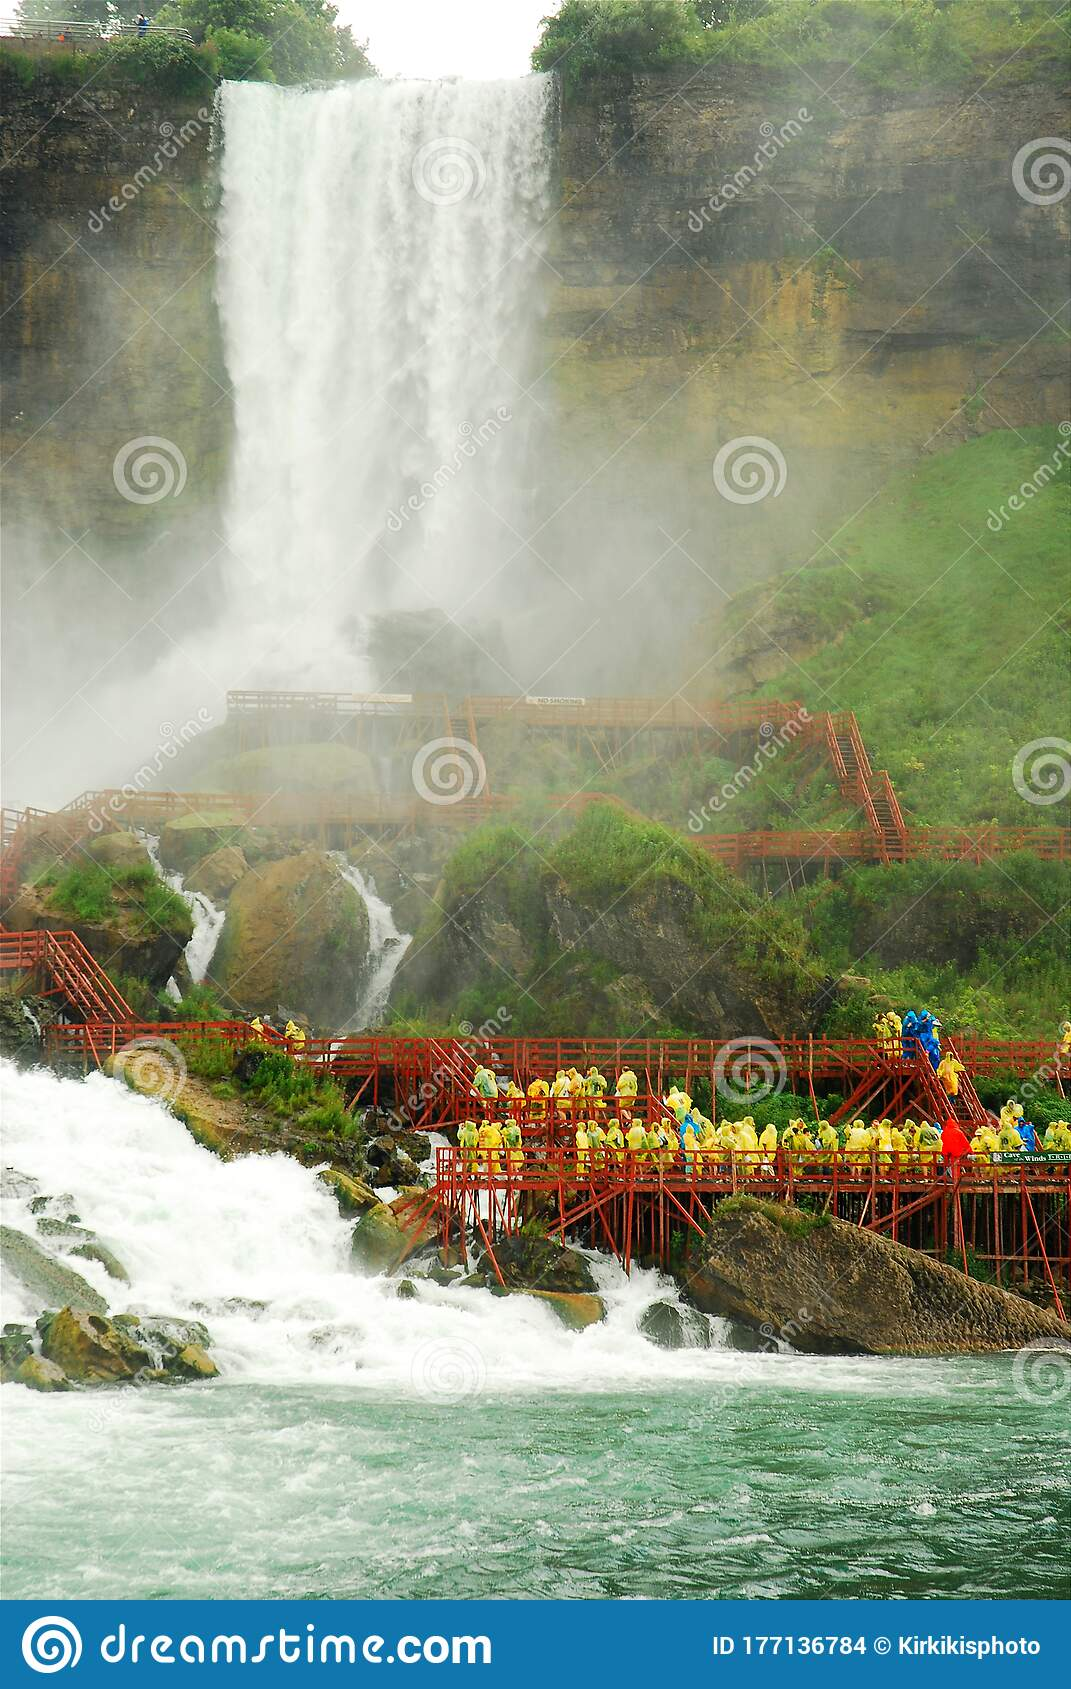 Cave Of The Winds Niagara Falls Editorial Stock Image Image Of Destination Adult 177136784